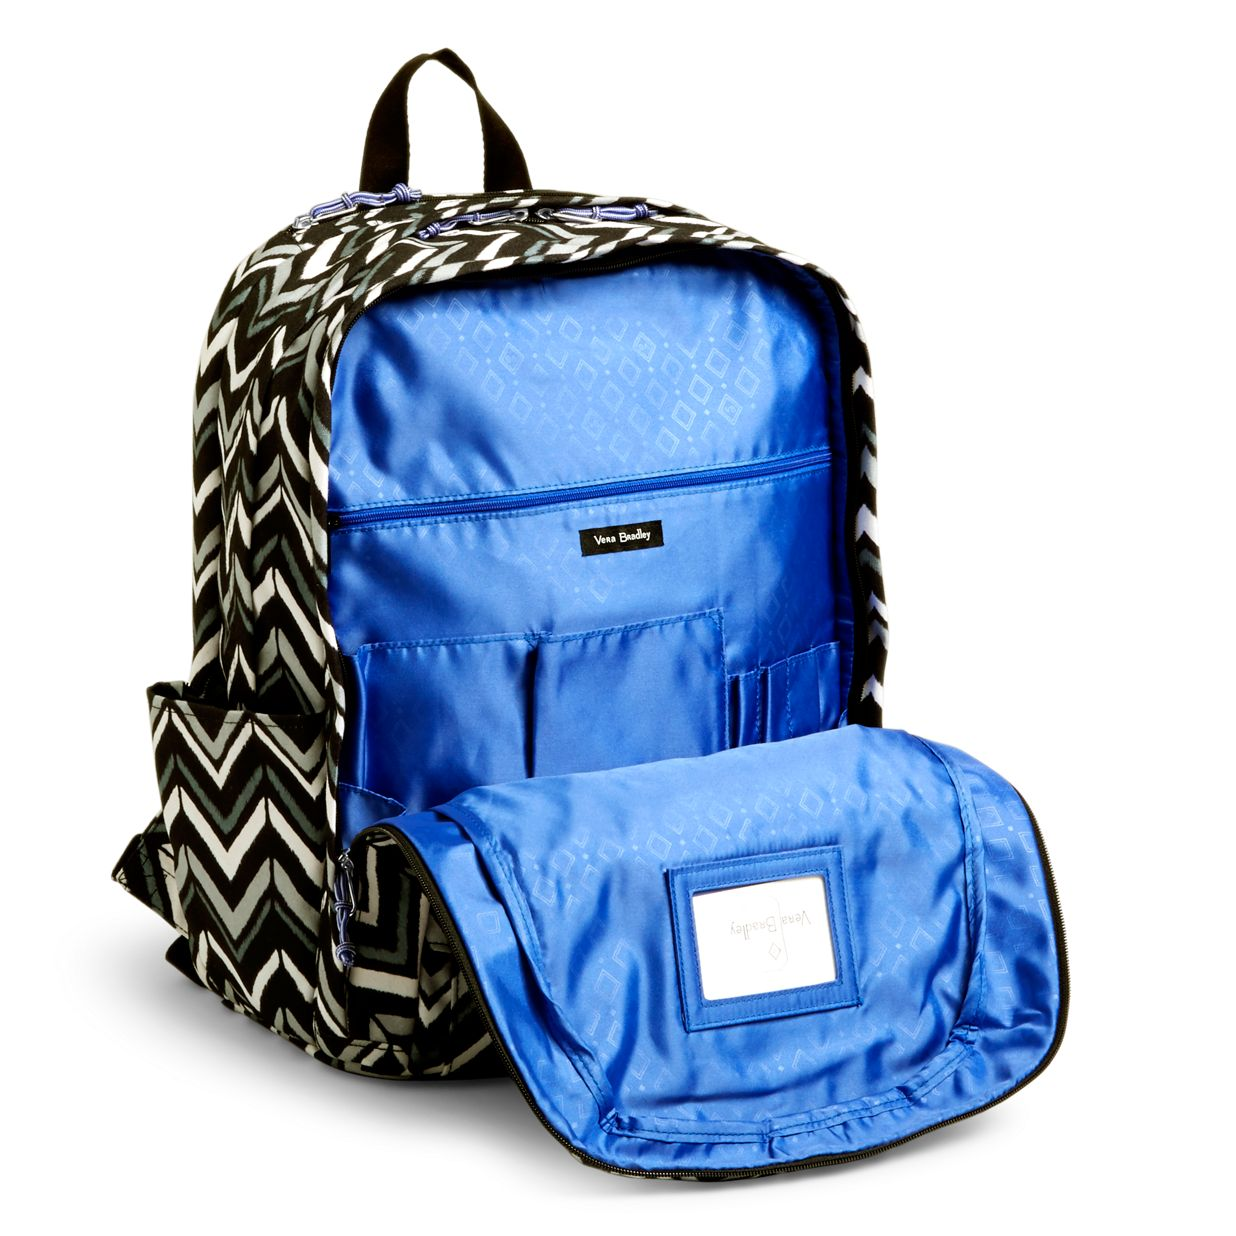 b4f00e6c96e9 ... Image of Lighten Up Grand Backpack in Lotus Chevron ...